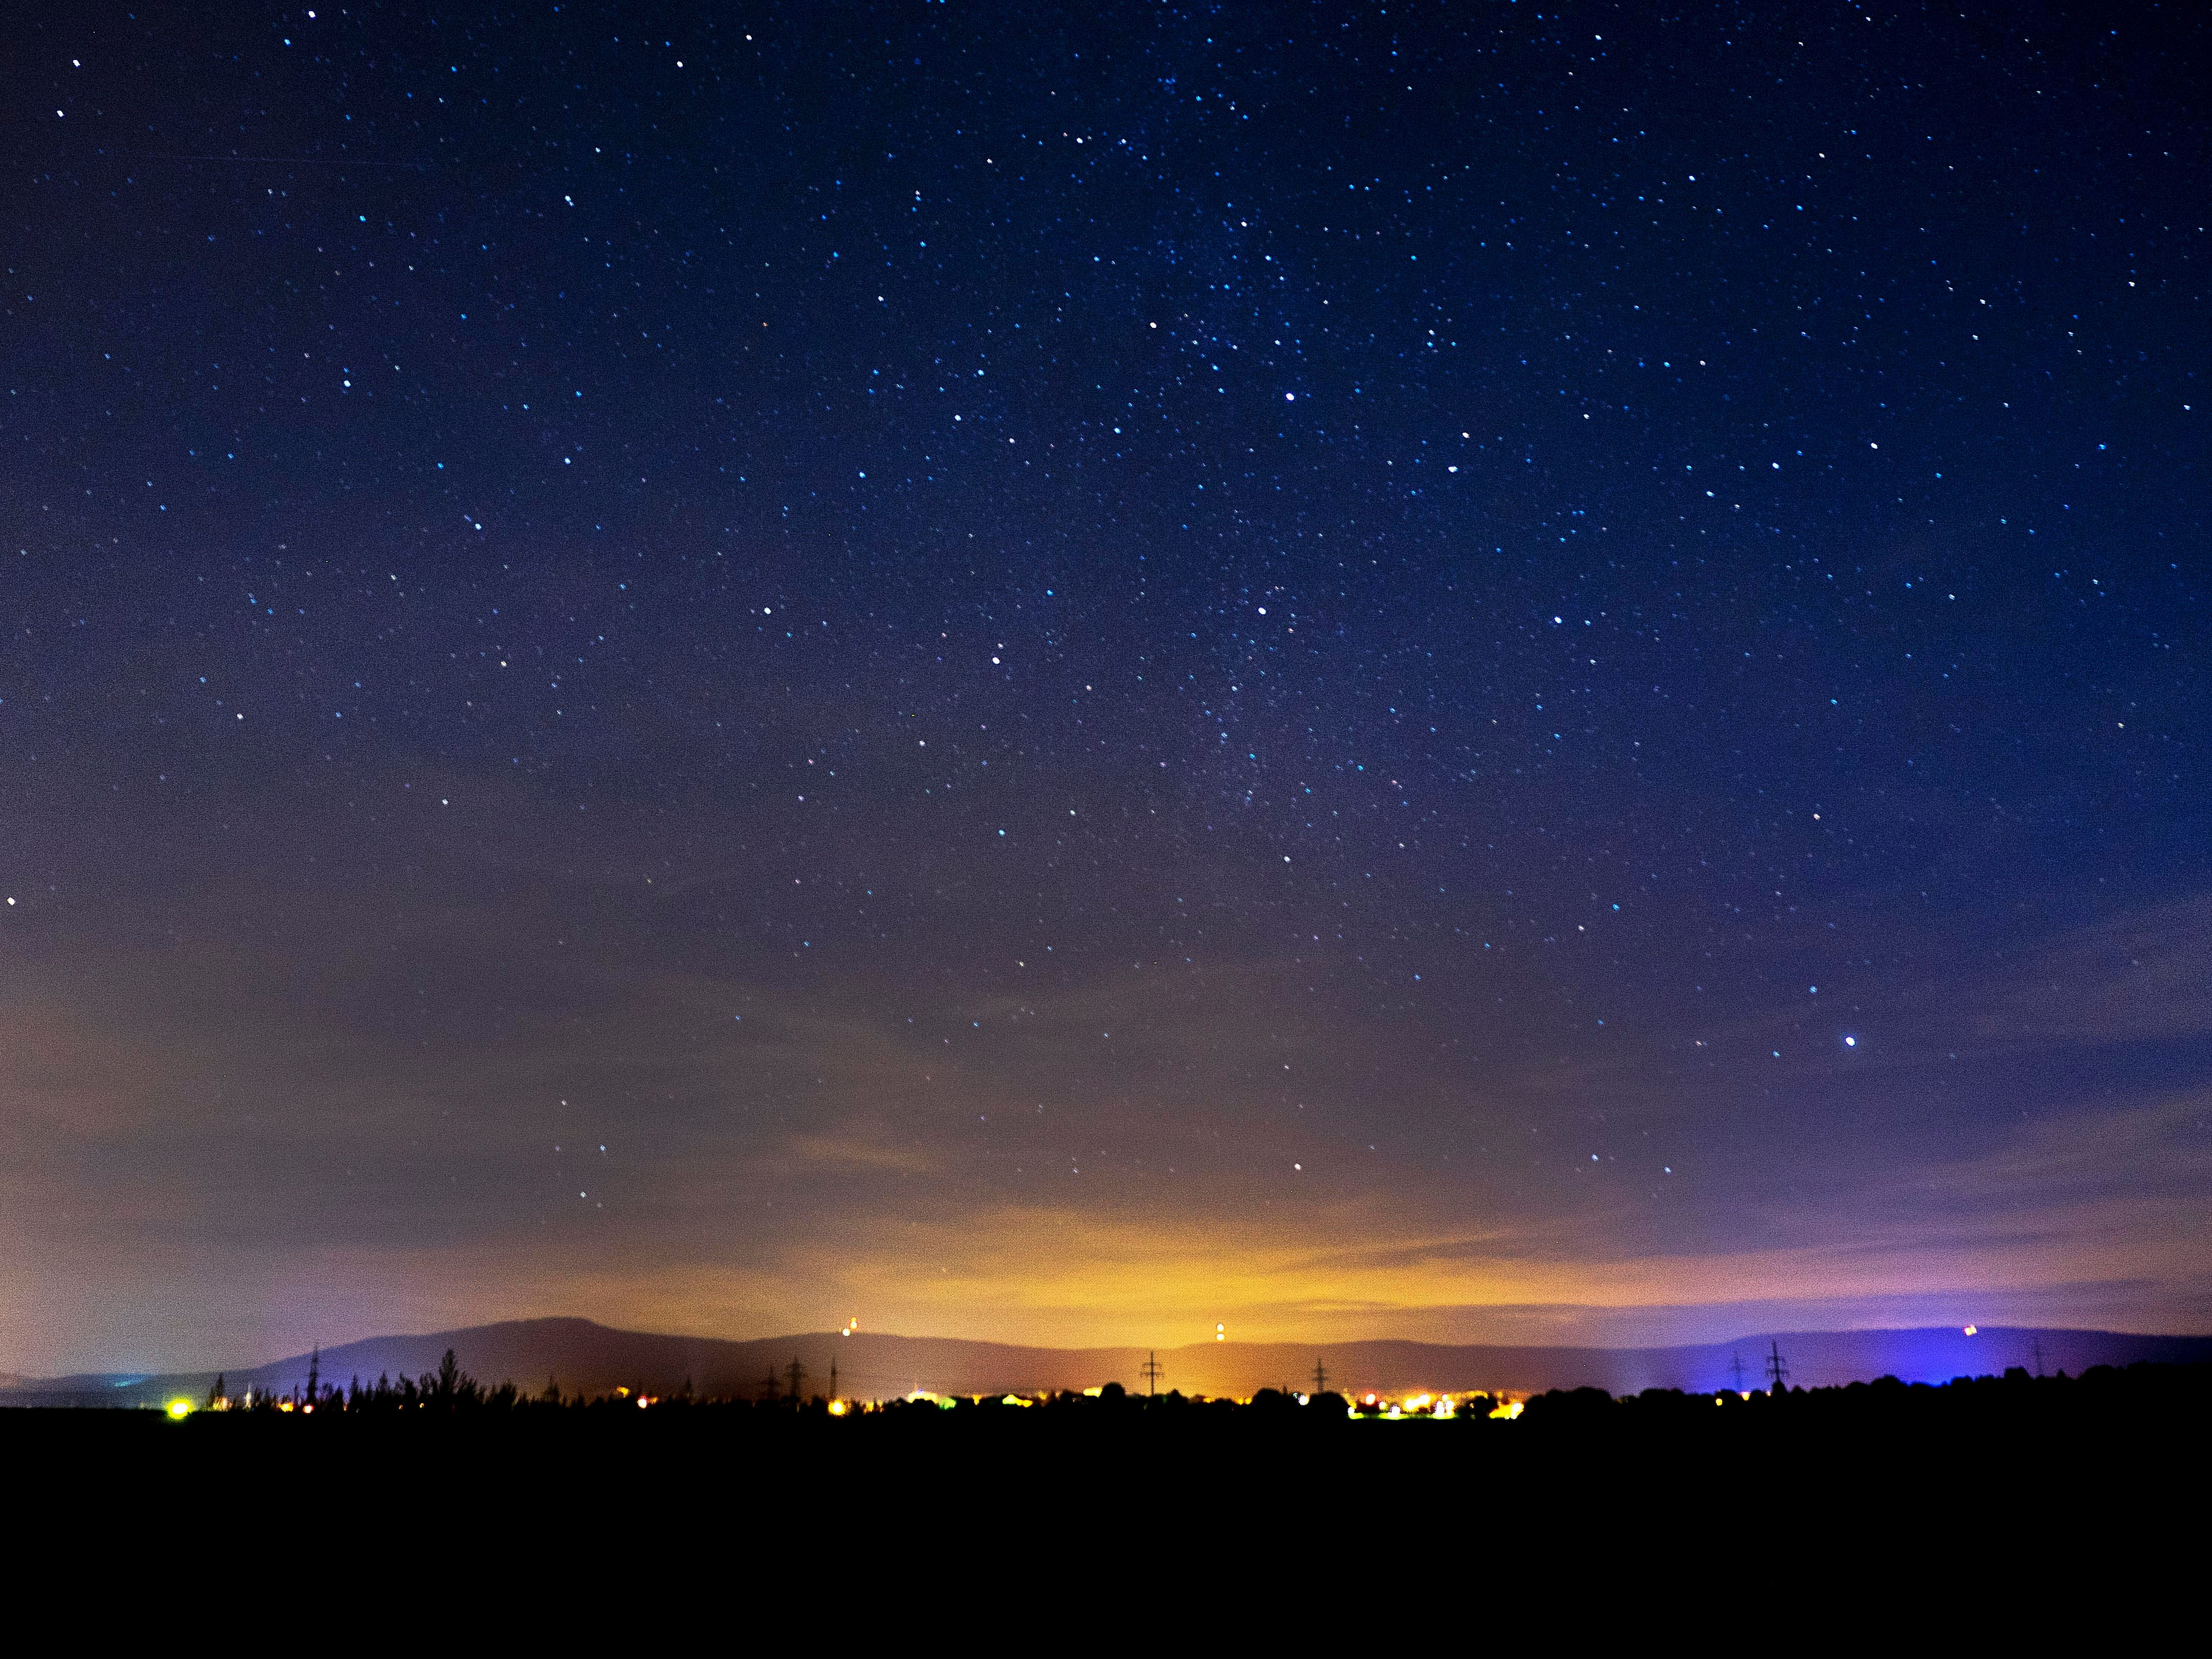 Stars shine over the hills of the Taunus region near Frankfurt, Germany, early Sunday, Sept. 16, 2018.